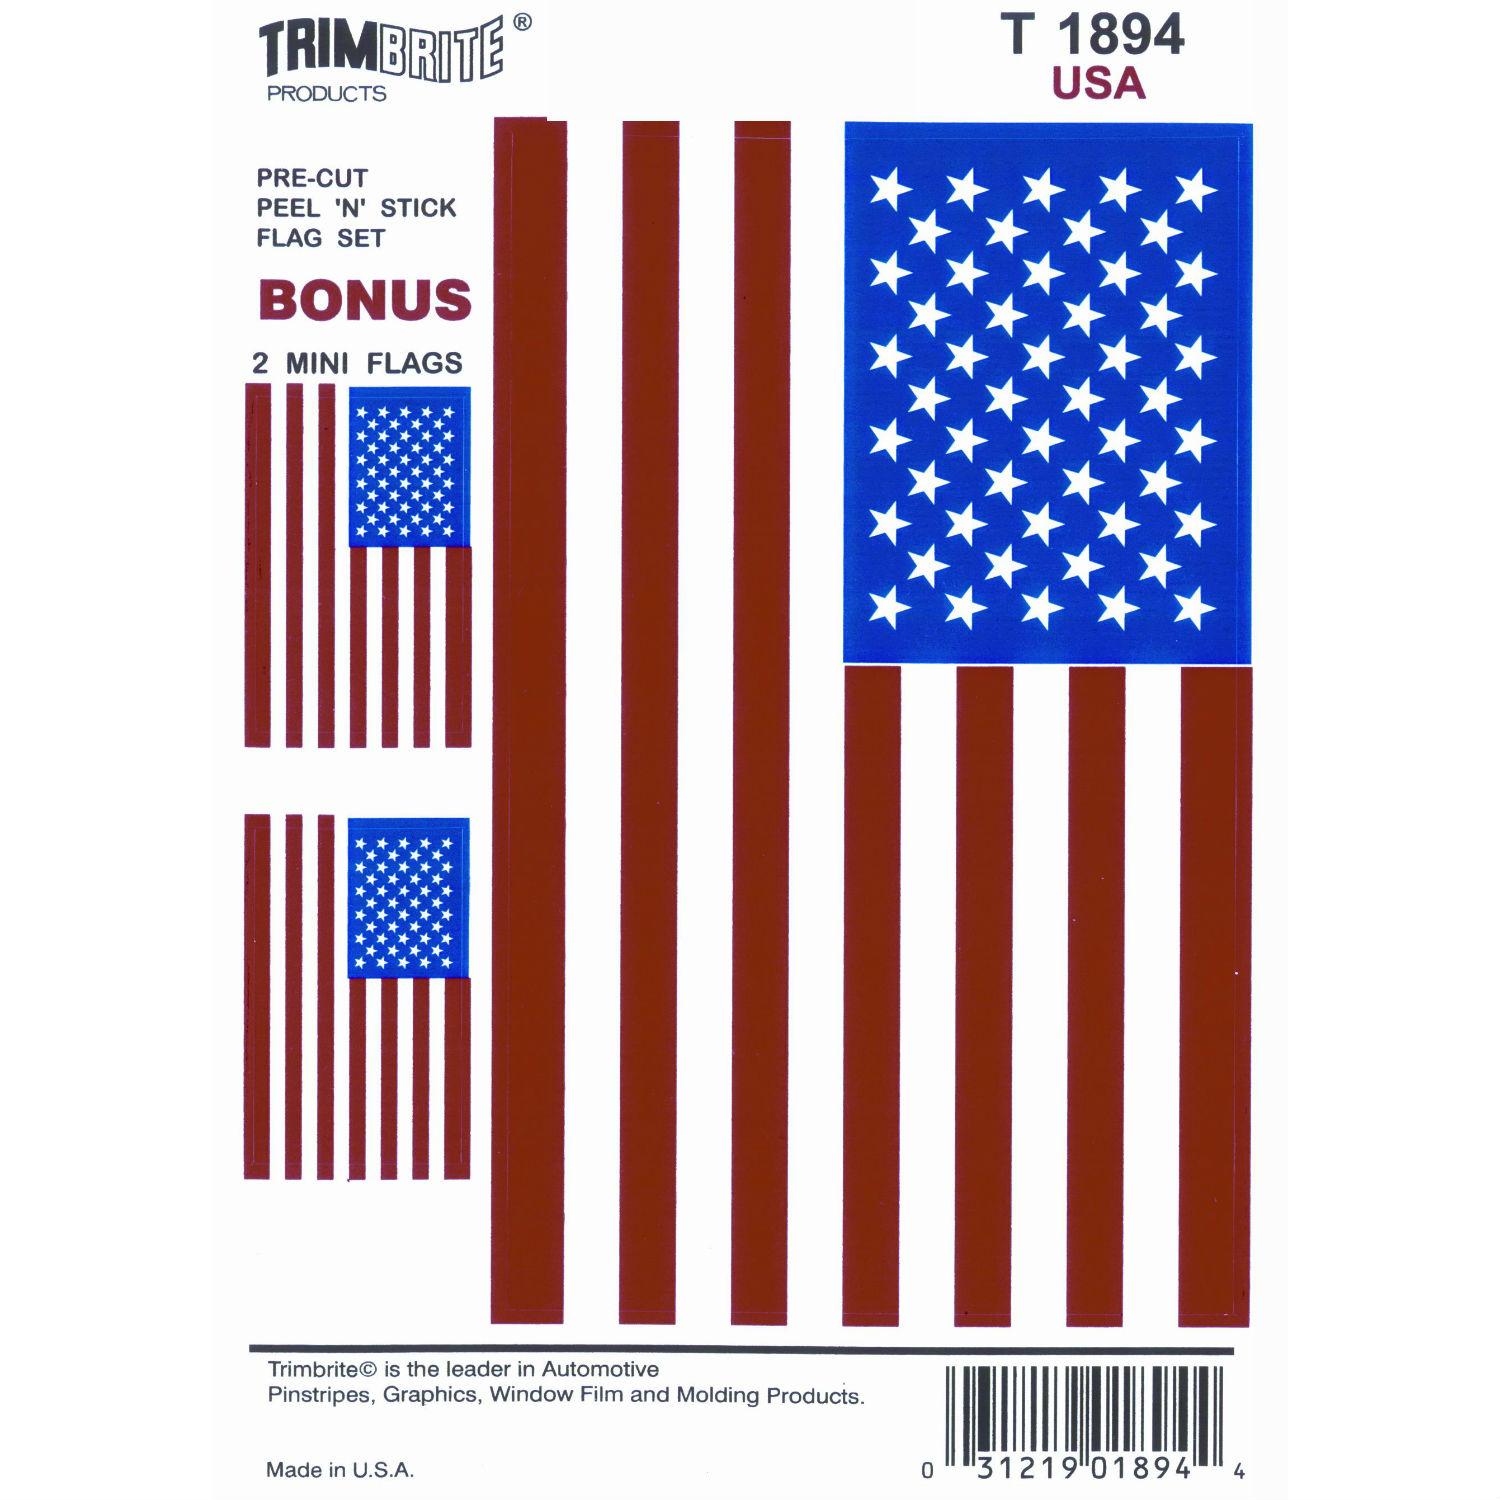 T1894 Trimbrite Decal American Flag